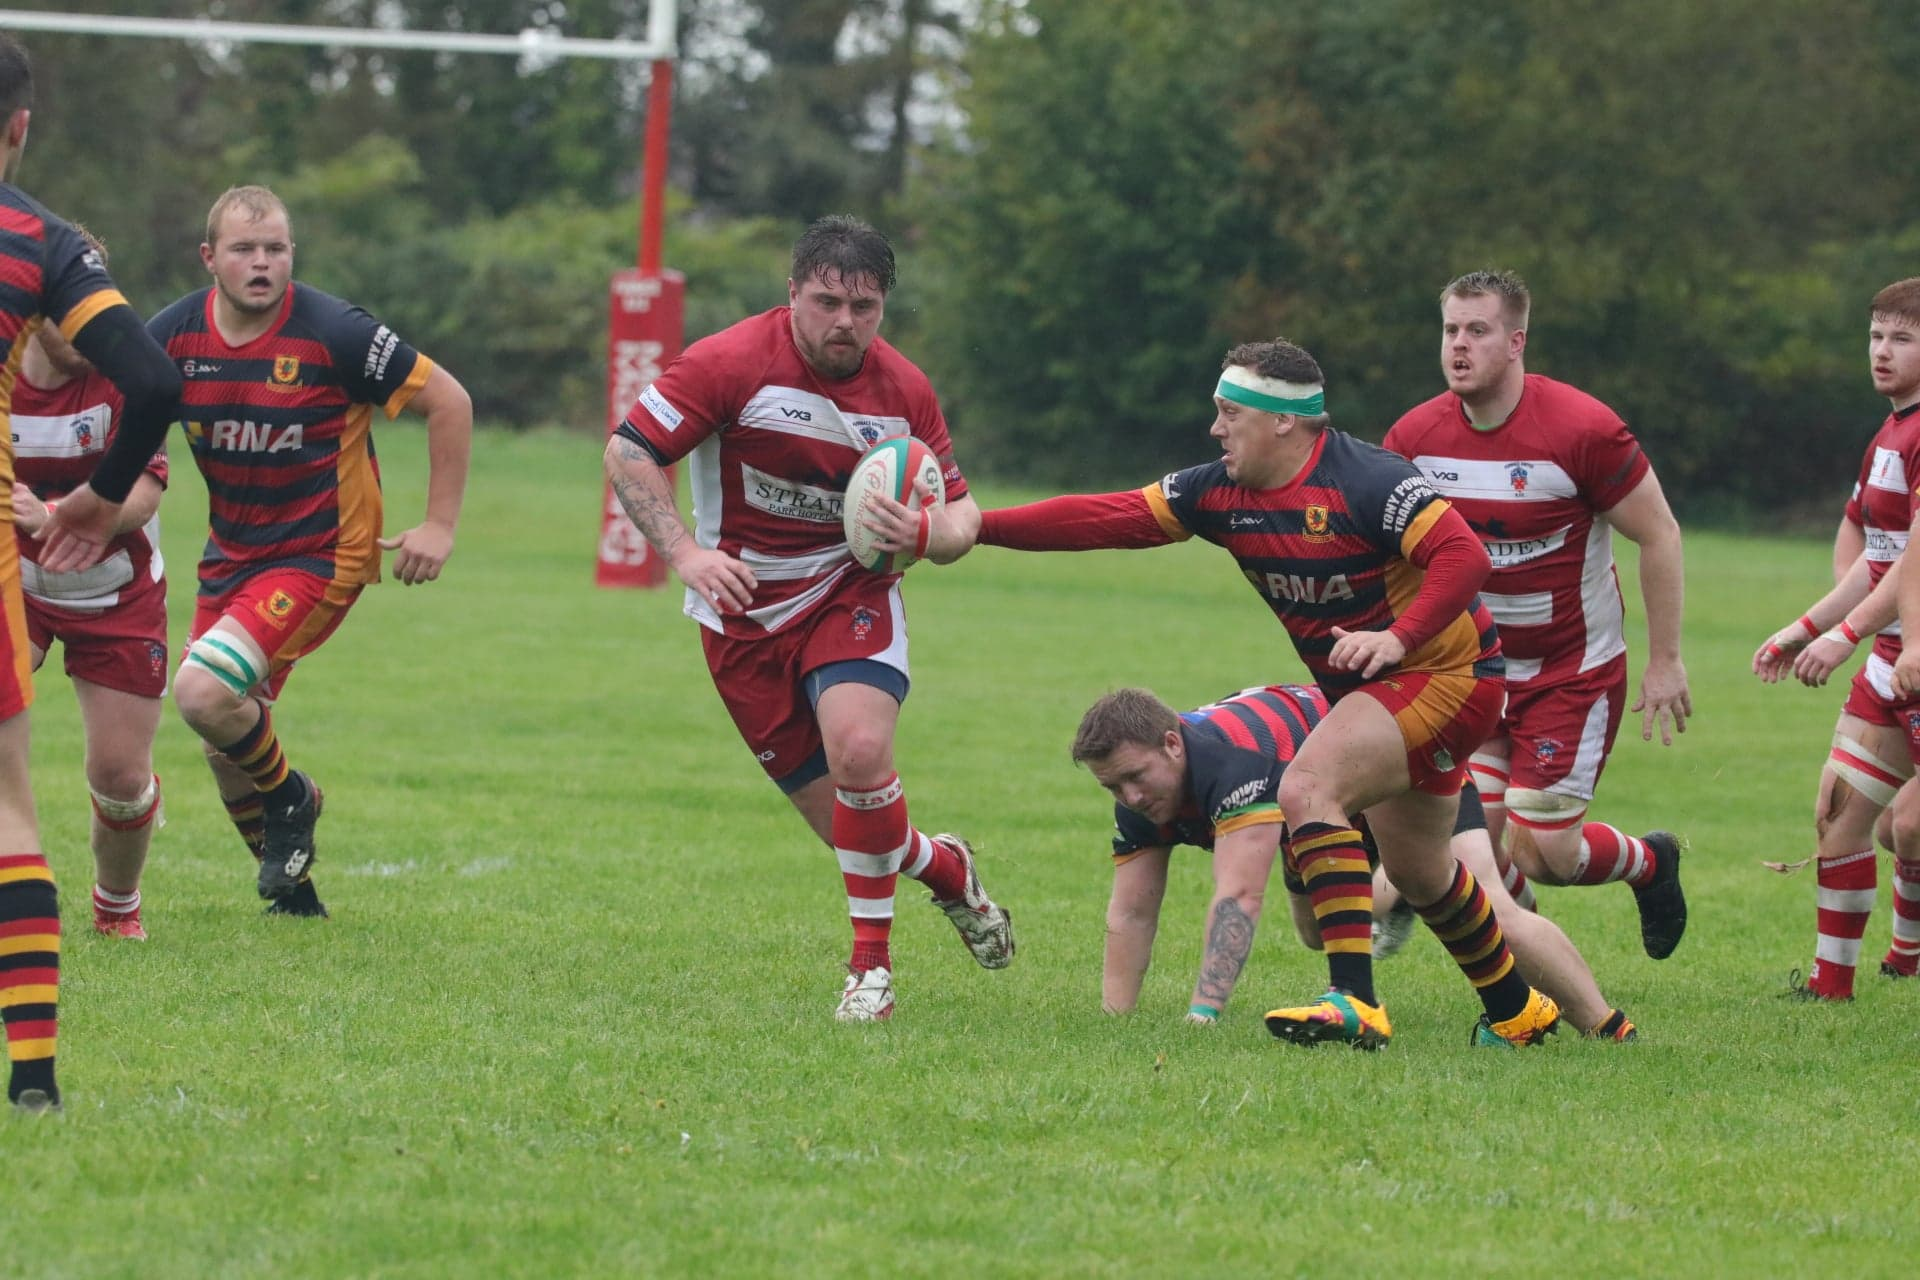 Furnace v Penygroes – Darren Harries